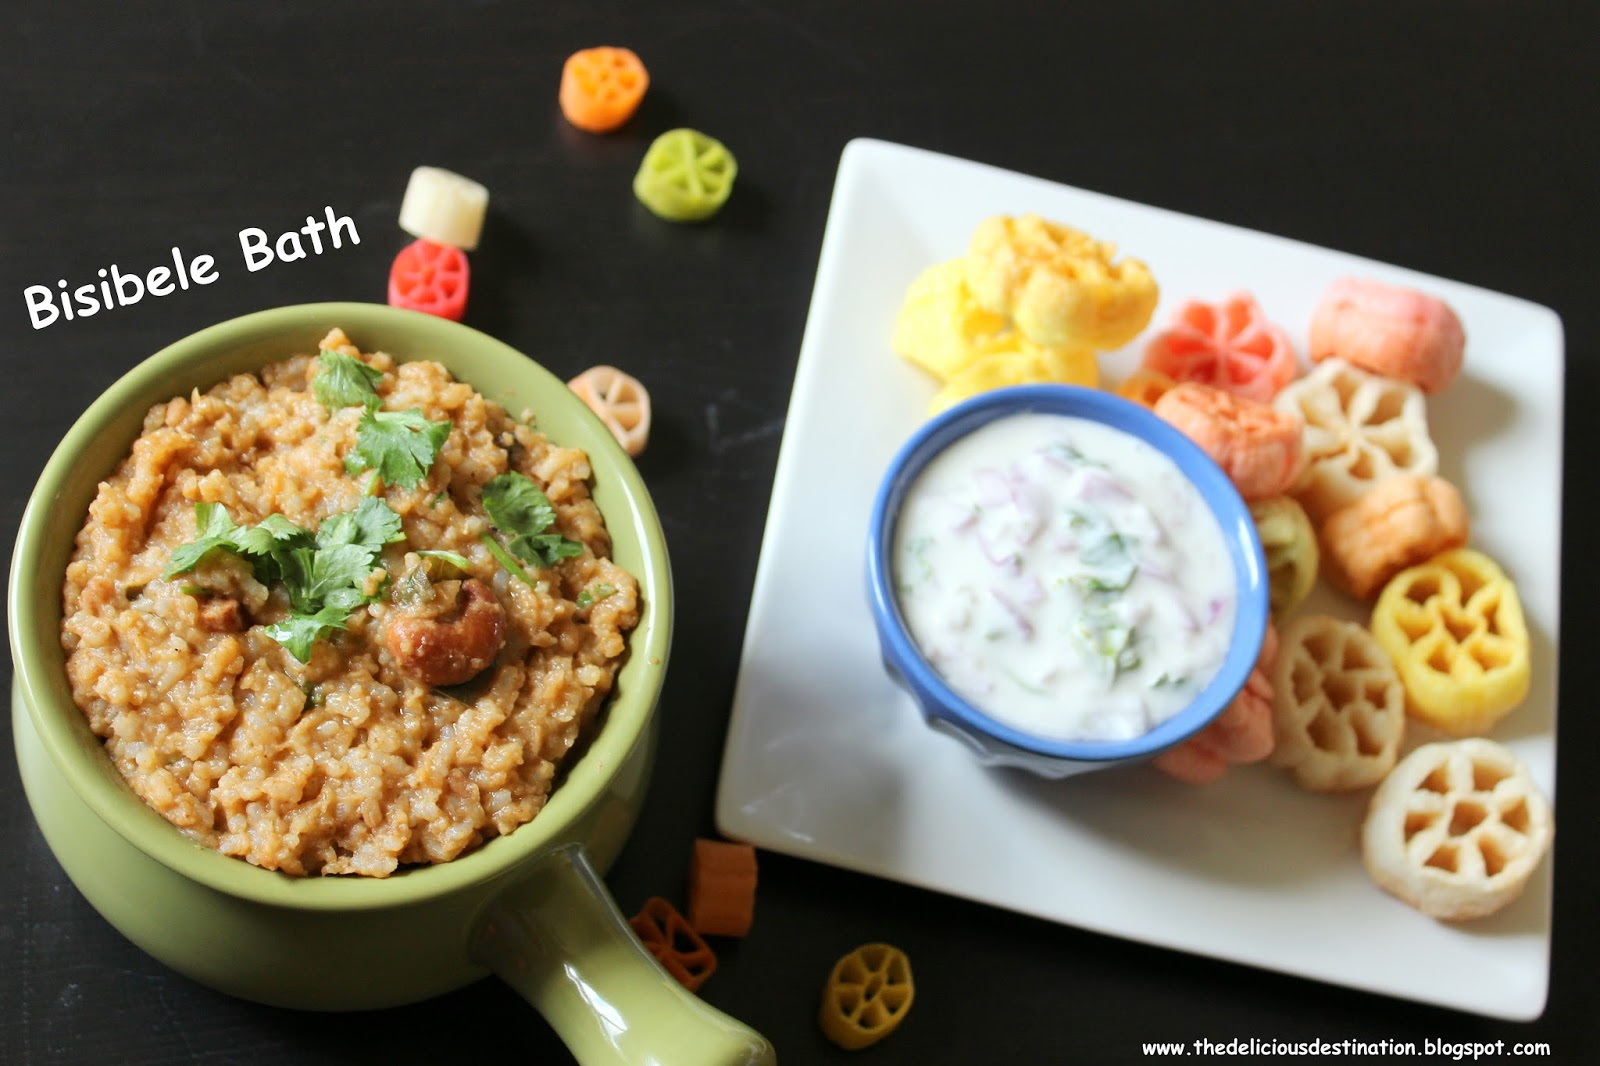 Chef Venkatesh Bhat Recipes In Tamil Pdf